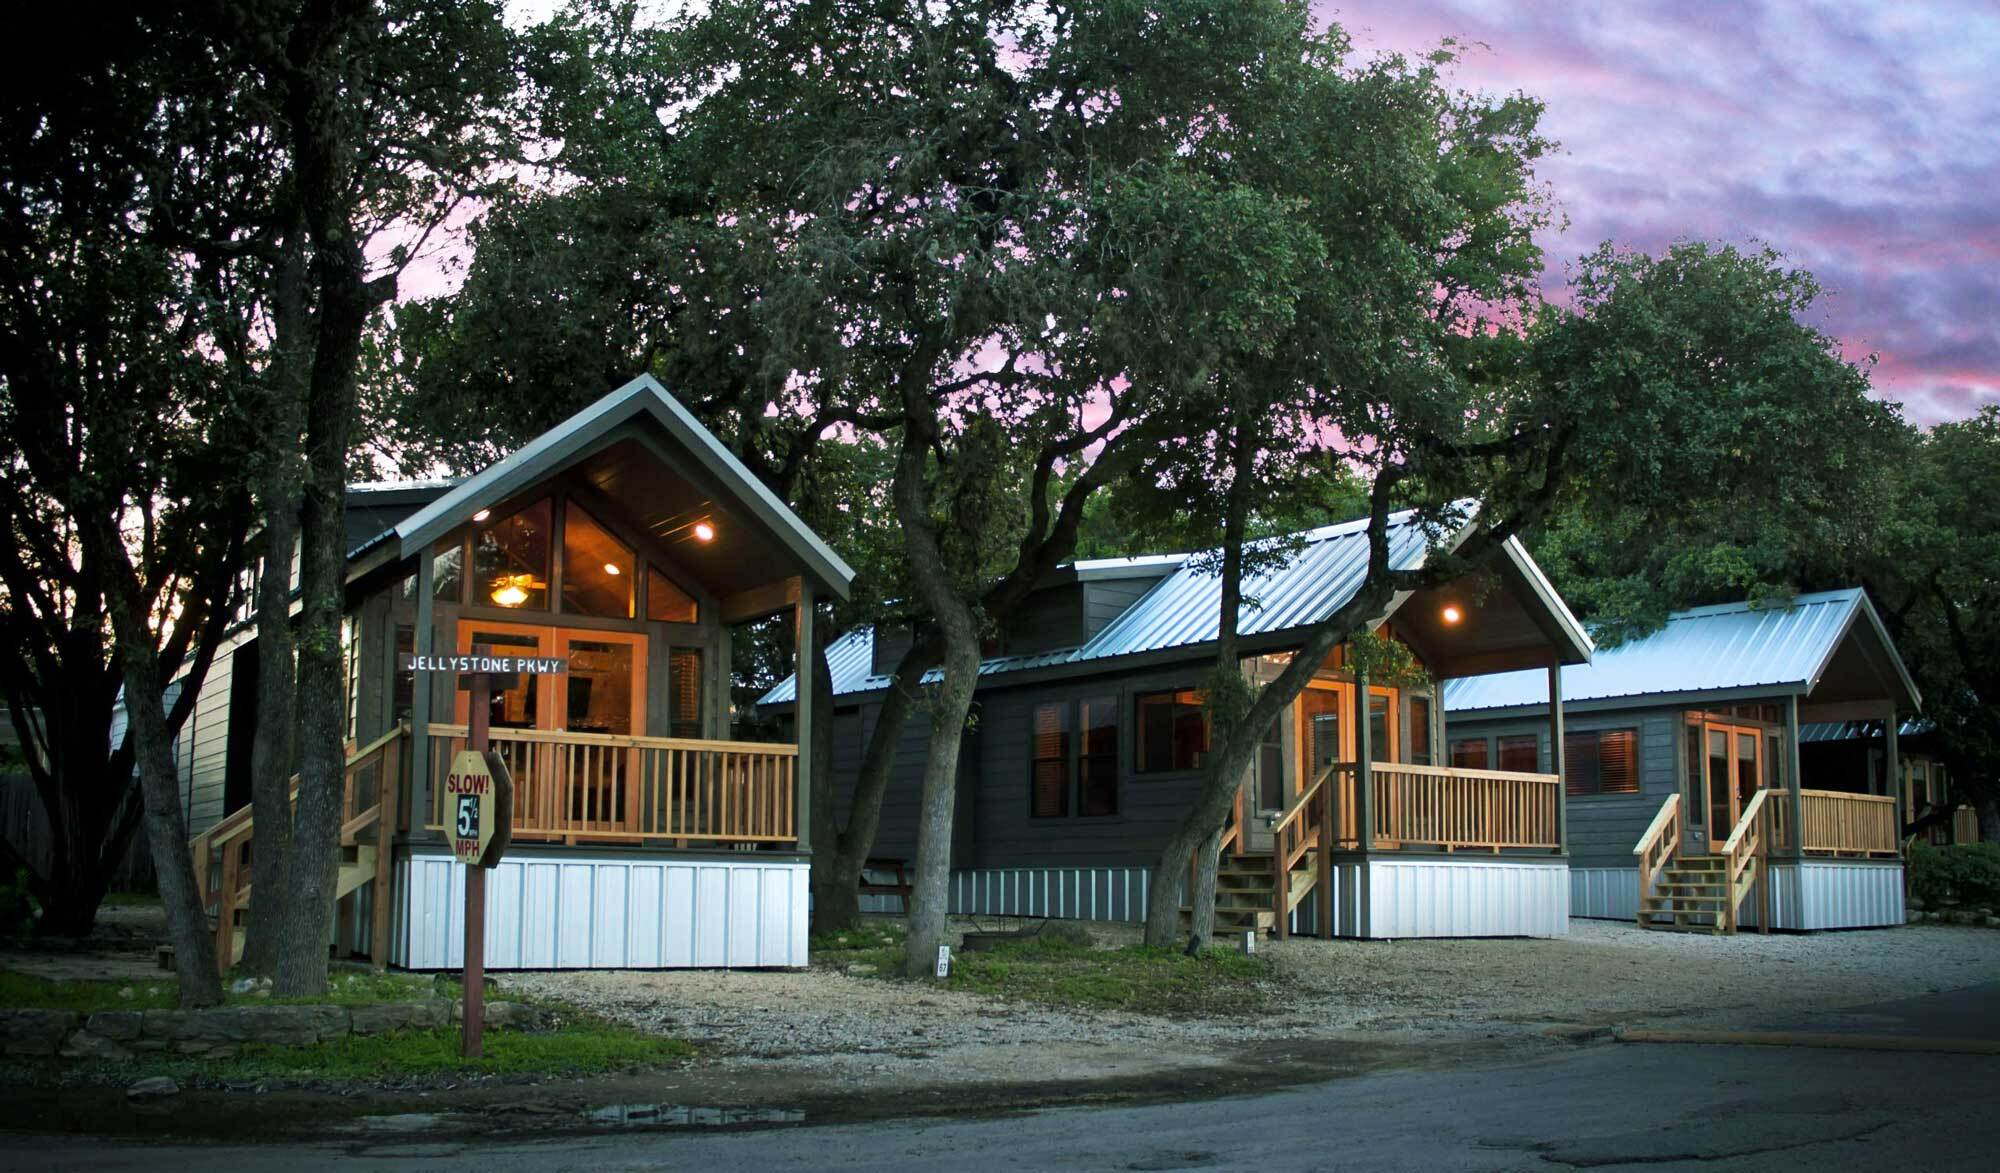 Cabins at Yogi Bear's Jellystone Park Camp-Resort in Hill Country, Texas.